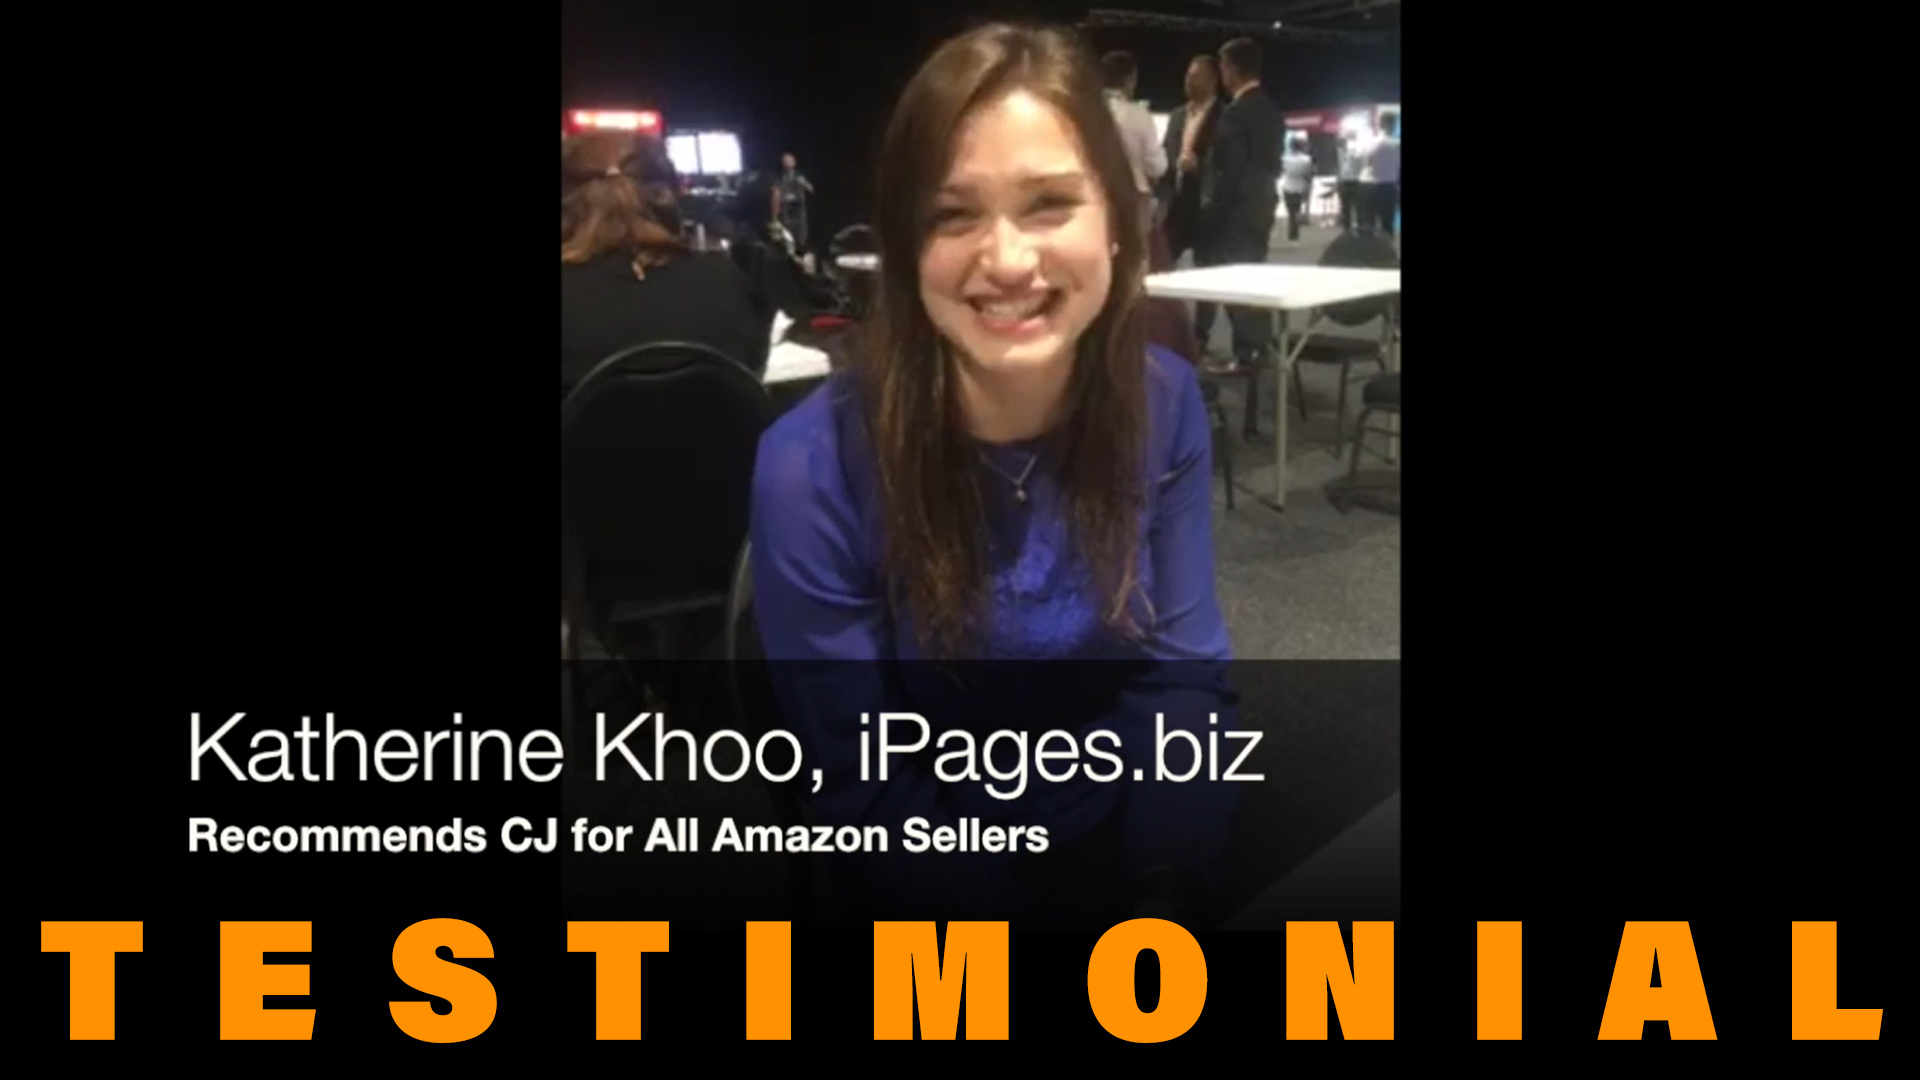 Vendor Katherine Khoo (iPages.biz) recommends CJ for all Amazon sellers